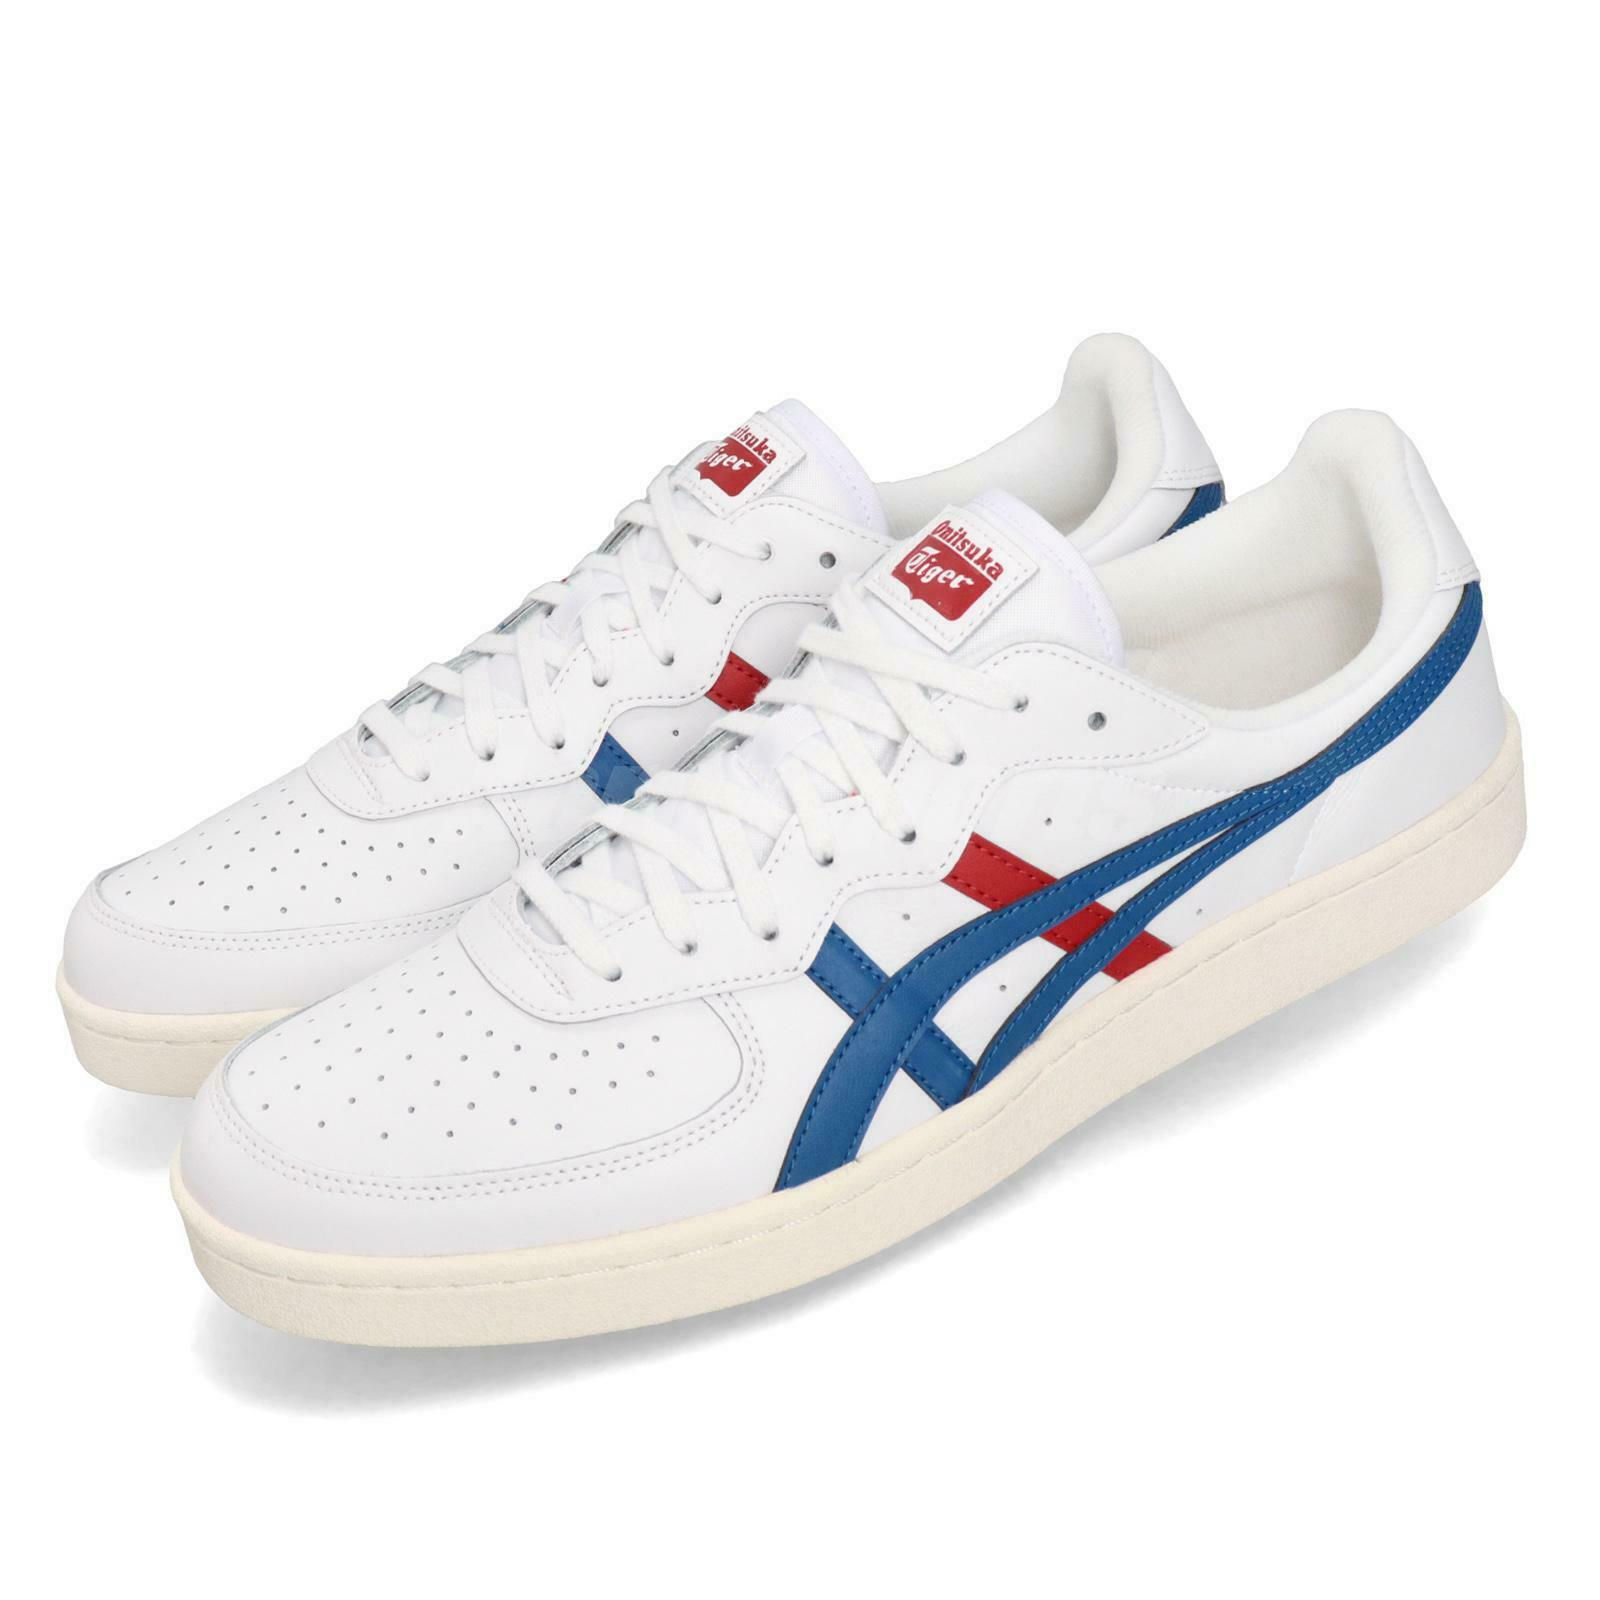 Asics Onitsuka Tiger GSM White bluee Red Men Women Unisex shoes 1183A651-105